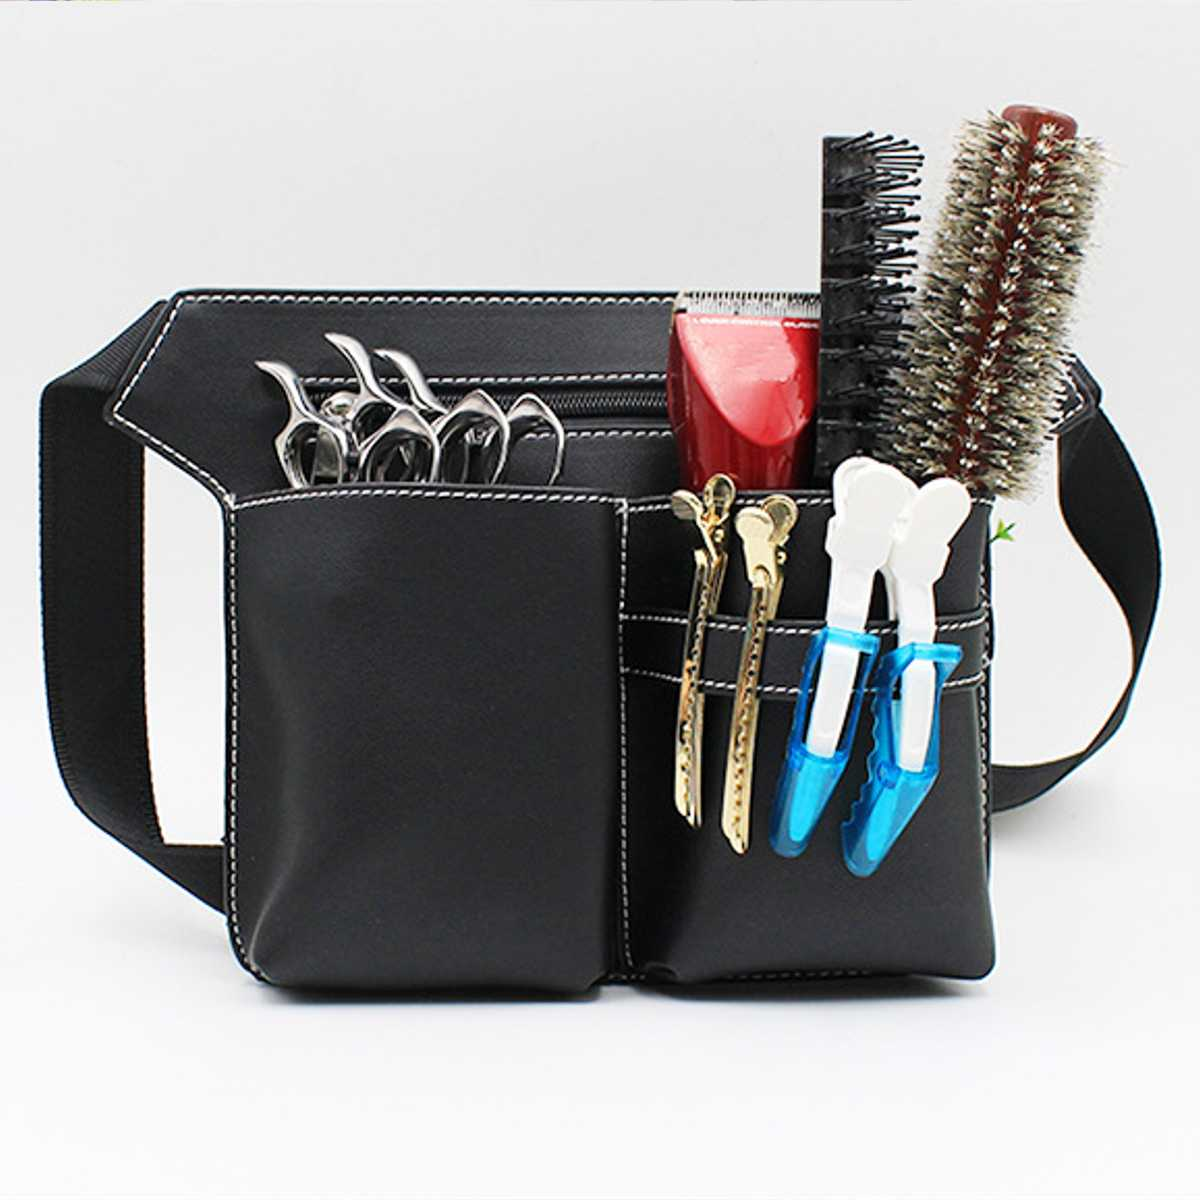 Hair Scissor Bag Clips Comb Case Hairdressing Barber Hair Scissor Holster Pouch Holder Tool Salon Waist Pack Belt PU Leather Bag